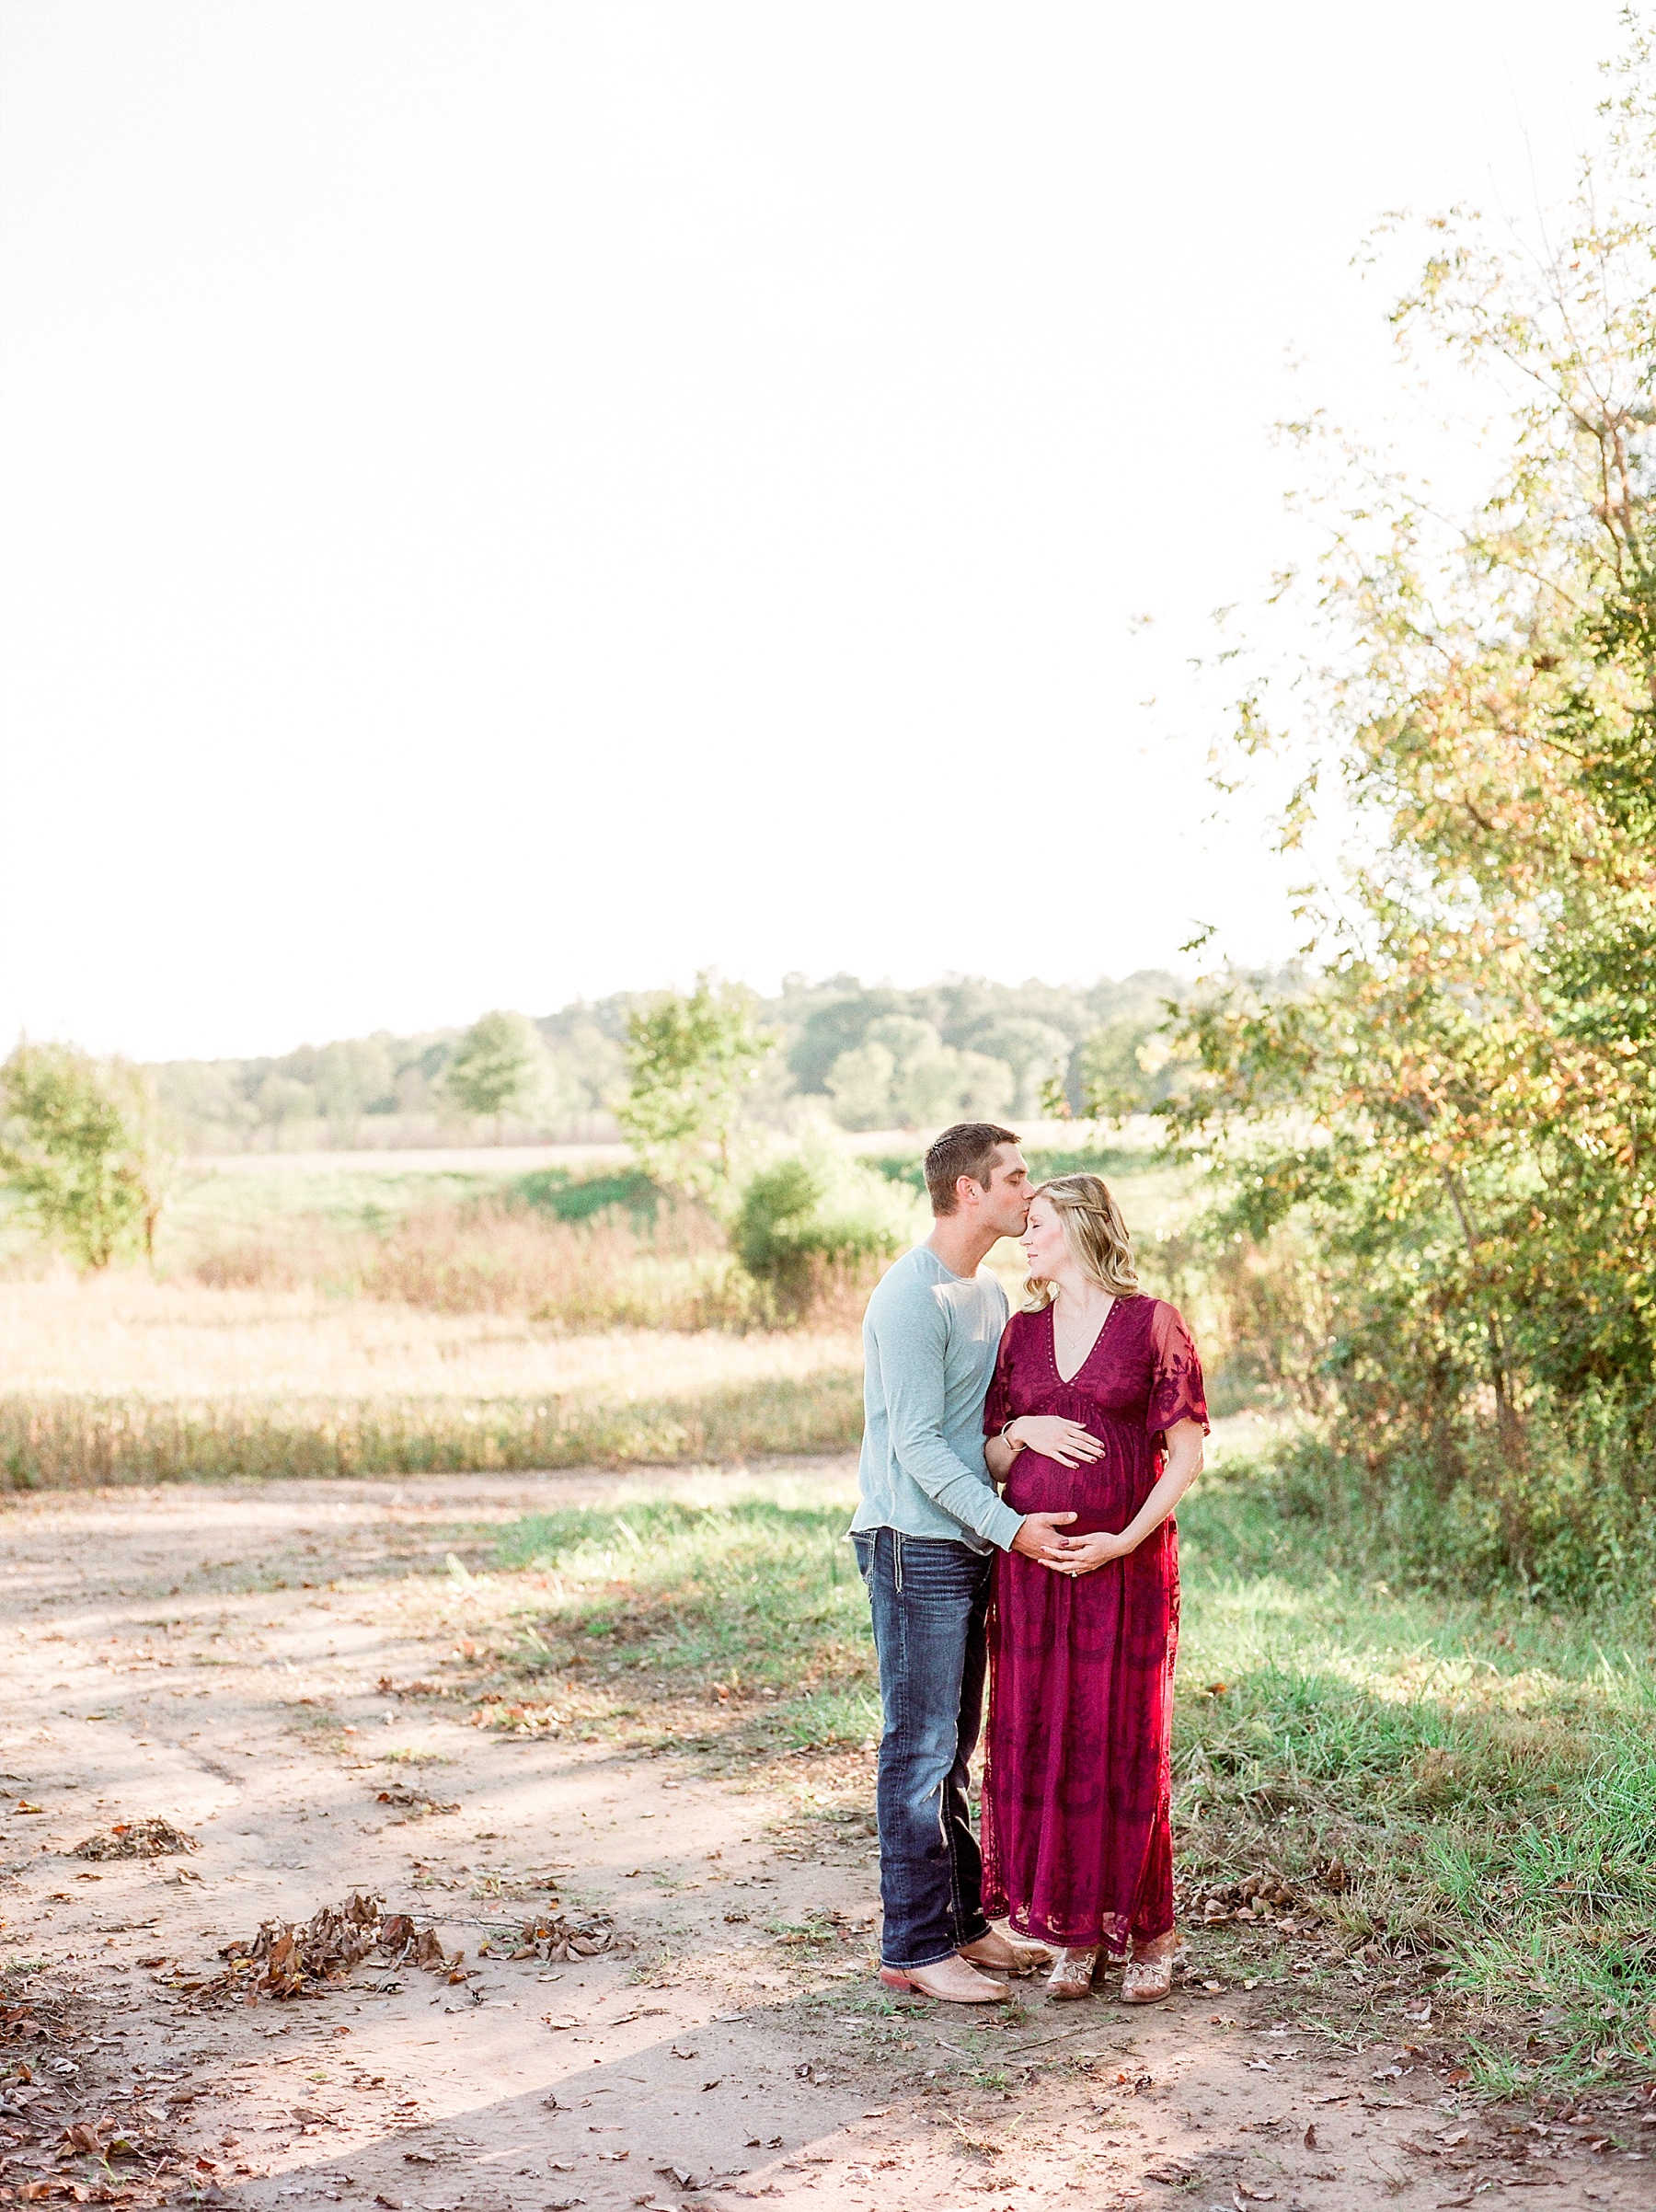 Sunset Maternity Session on Family Farm in Mid Missouri by Kelsi Kliethermes Photography_0013.jpg